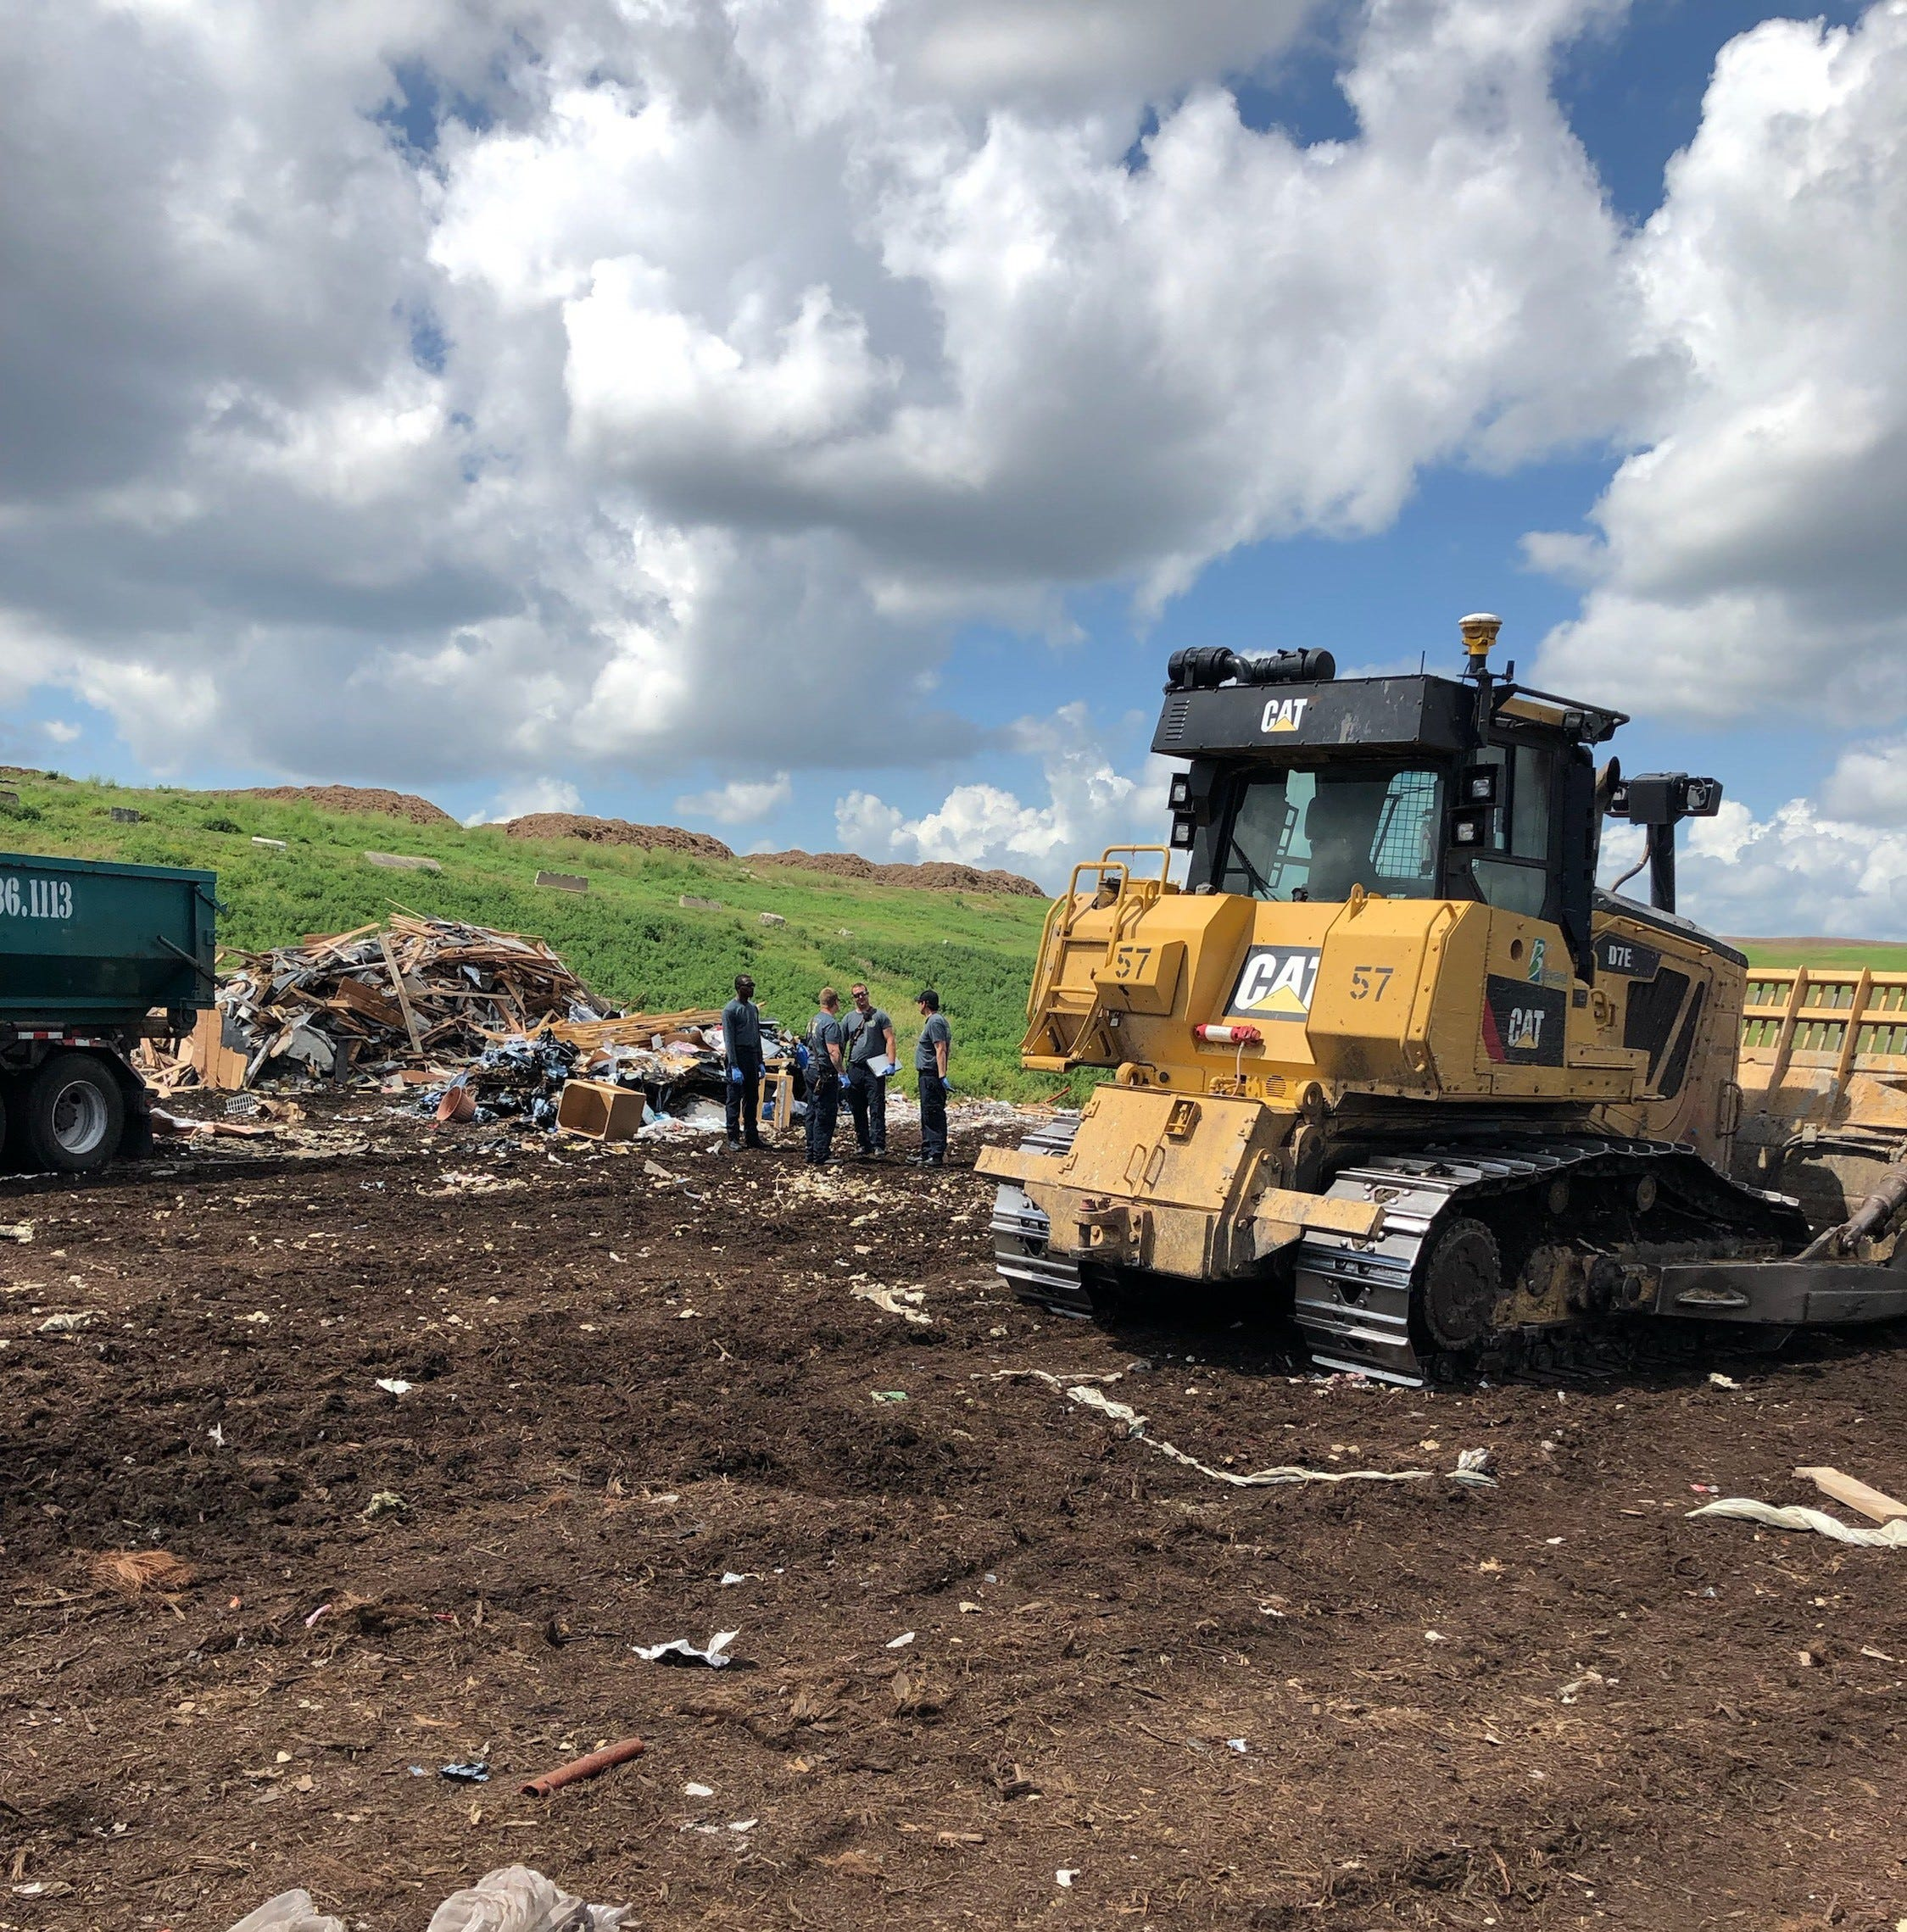 Worker dies after being struck by bulldozer at Brevard County landfill in Melbourne